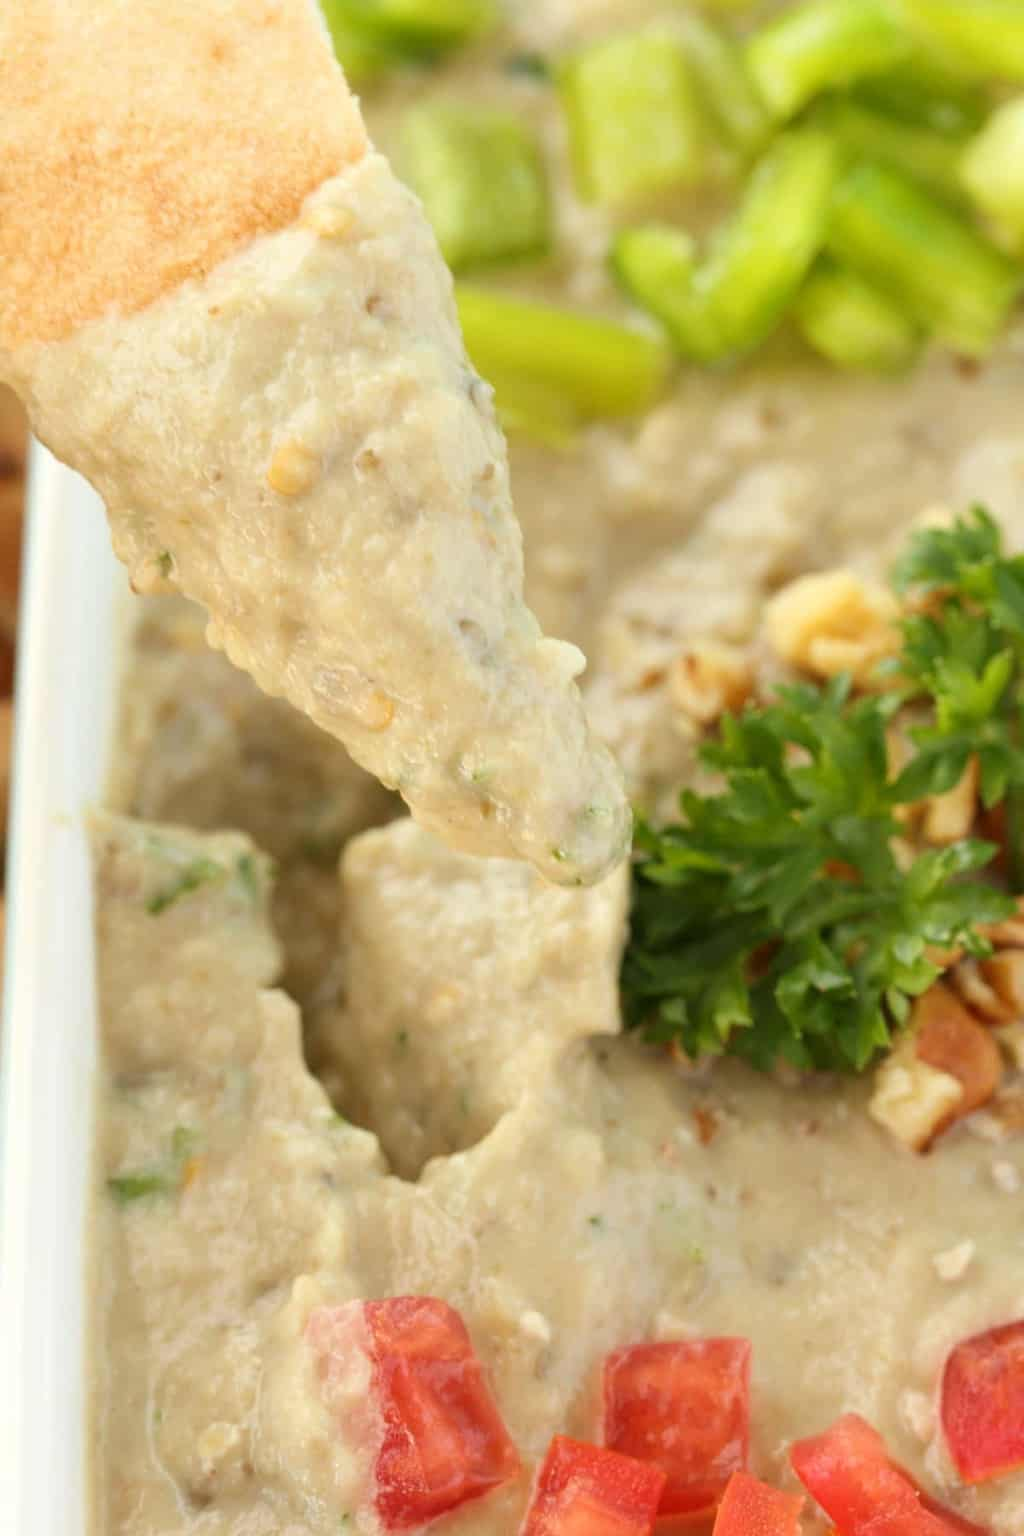 A pita bread dipping into eggplant dip in a white serving dish.